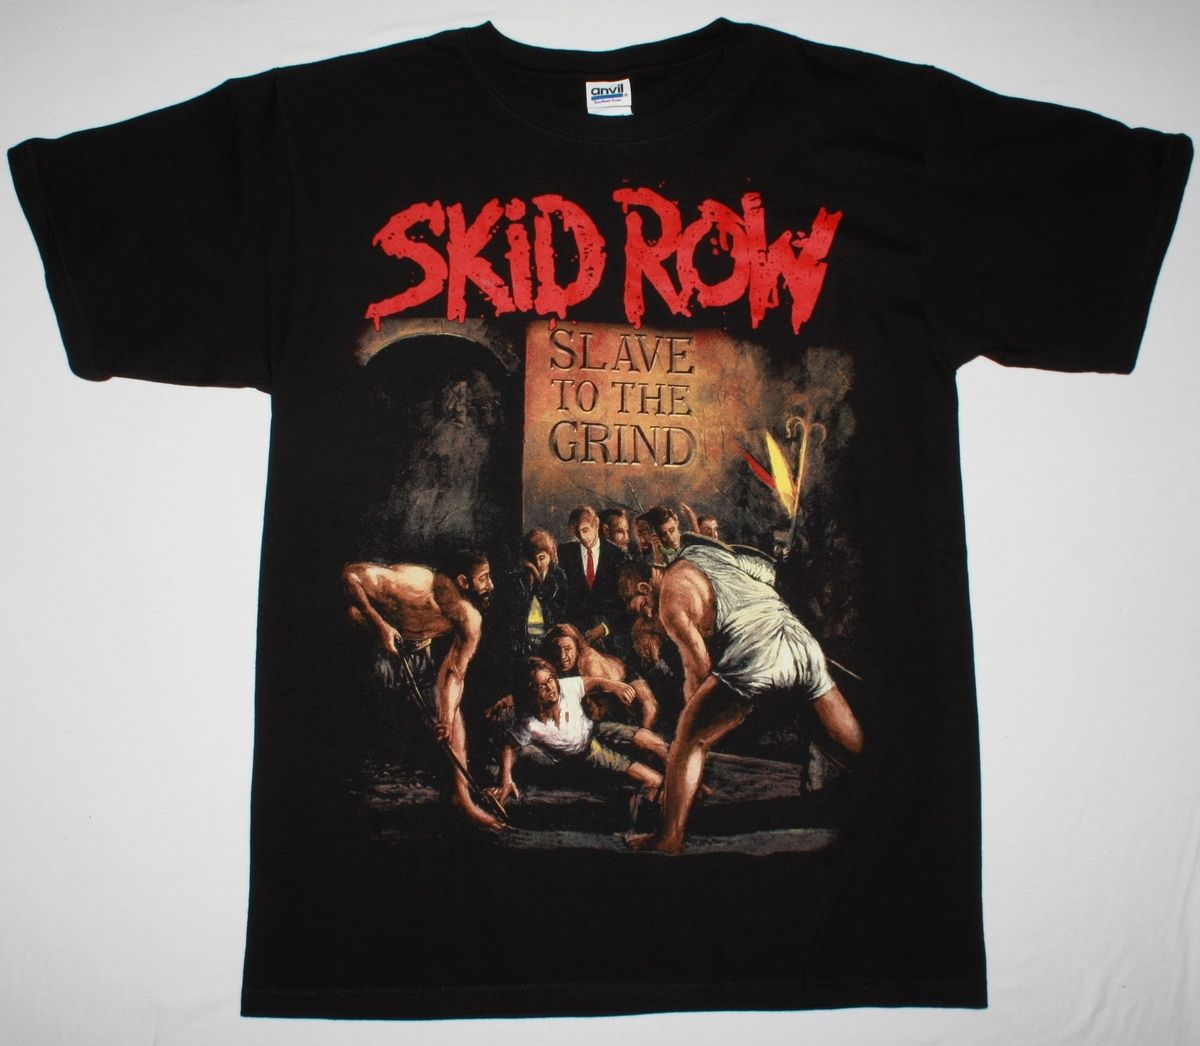 SKID ROW SLAVE TO THE GRIND'91 GLAM ROCK SKIDROW DOKKEN <font><b>RATT</b></font> NEW BLACK <font><b>T</b></font>-<font><b>SHIRT</b></font> Personalized <font><b>T</b></font> <font><b>Shirt</b></font> Custom <font><b>T</b></font> <font><b>Shirt</b></font> Top Tee image